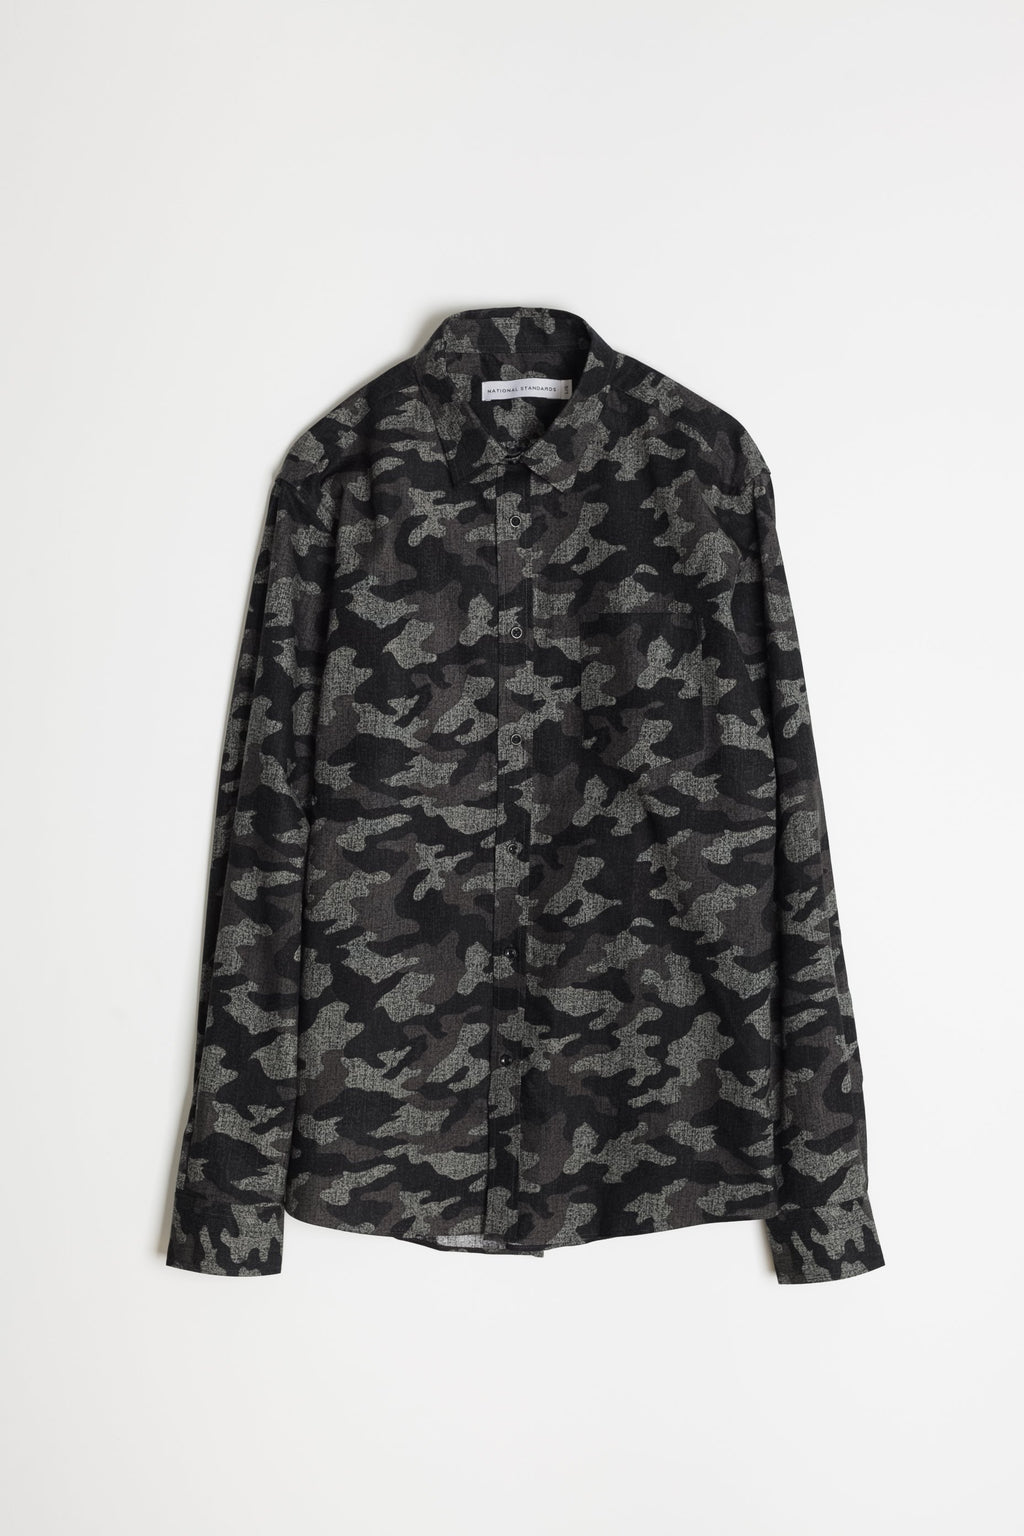 Japanese Camouflage Print in Grey 05